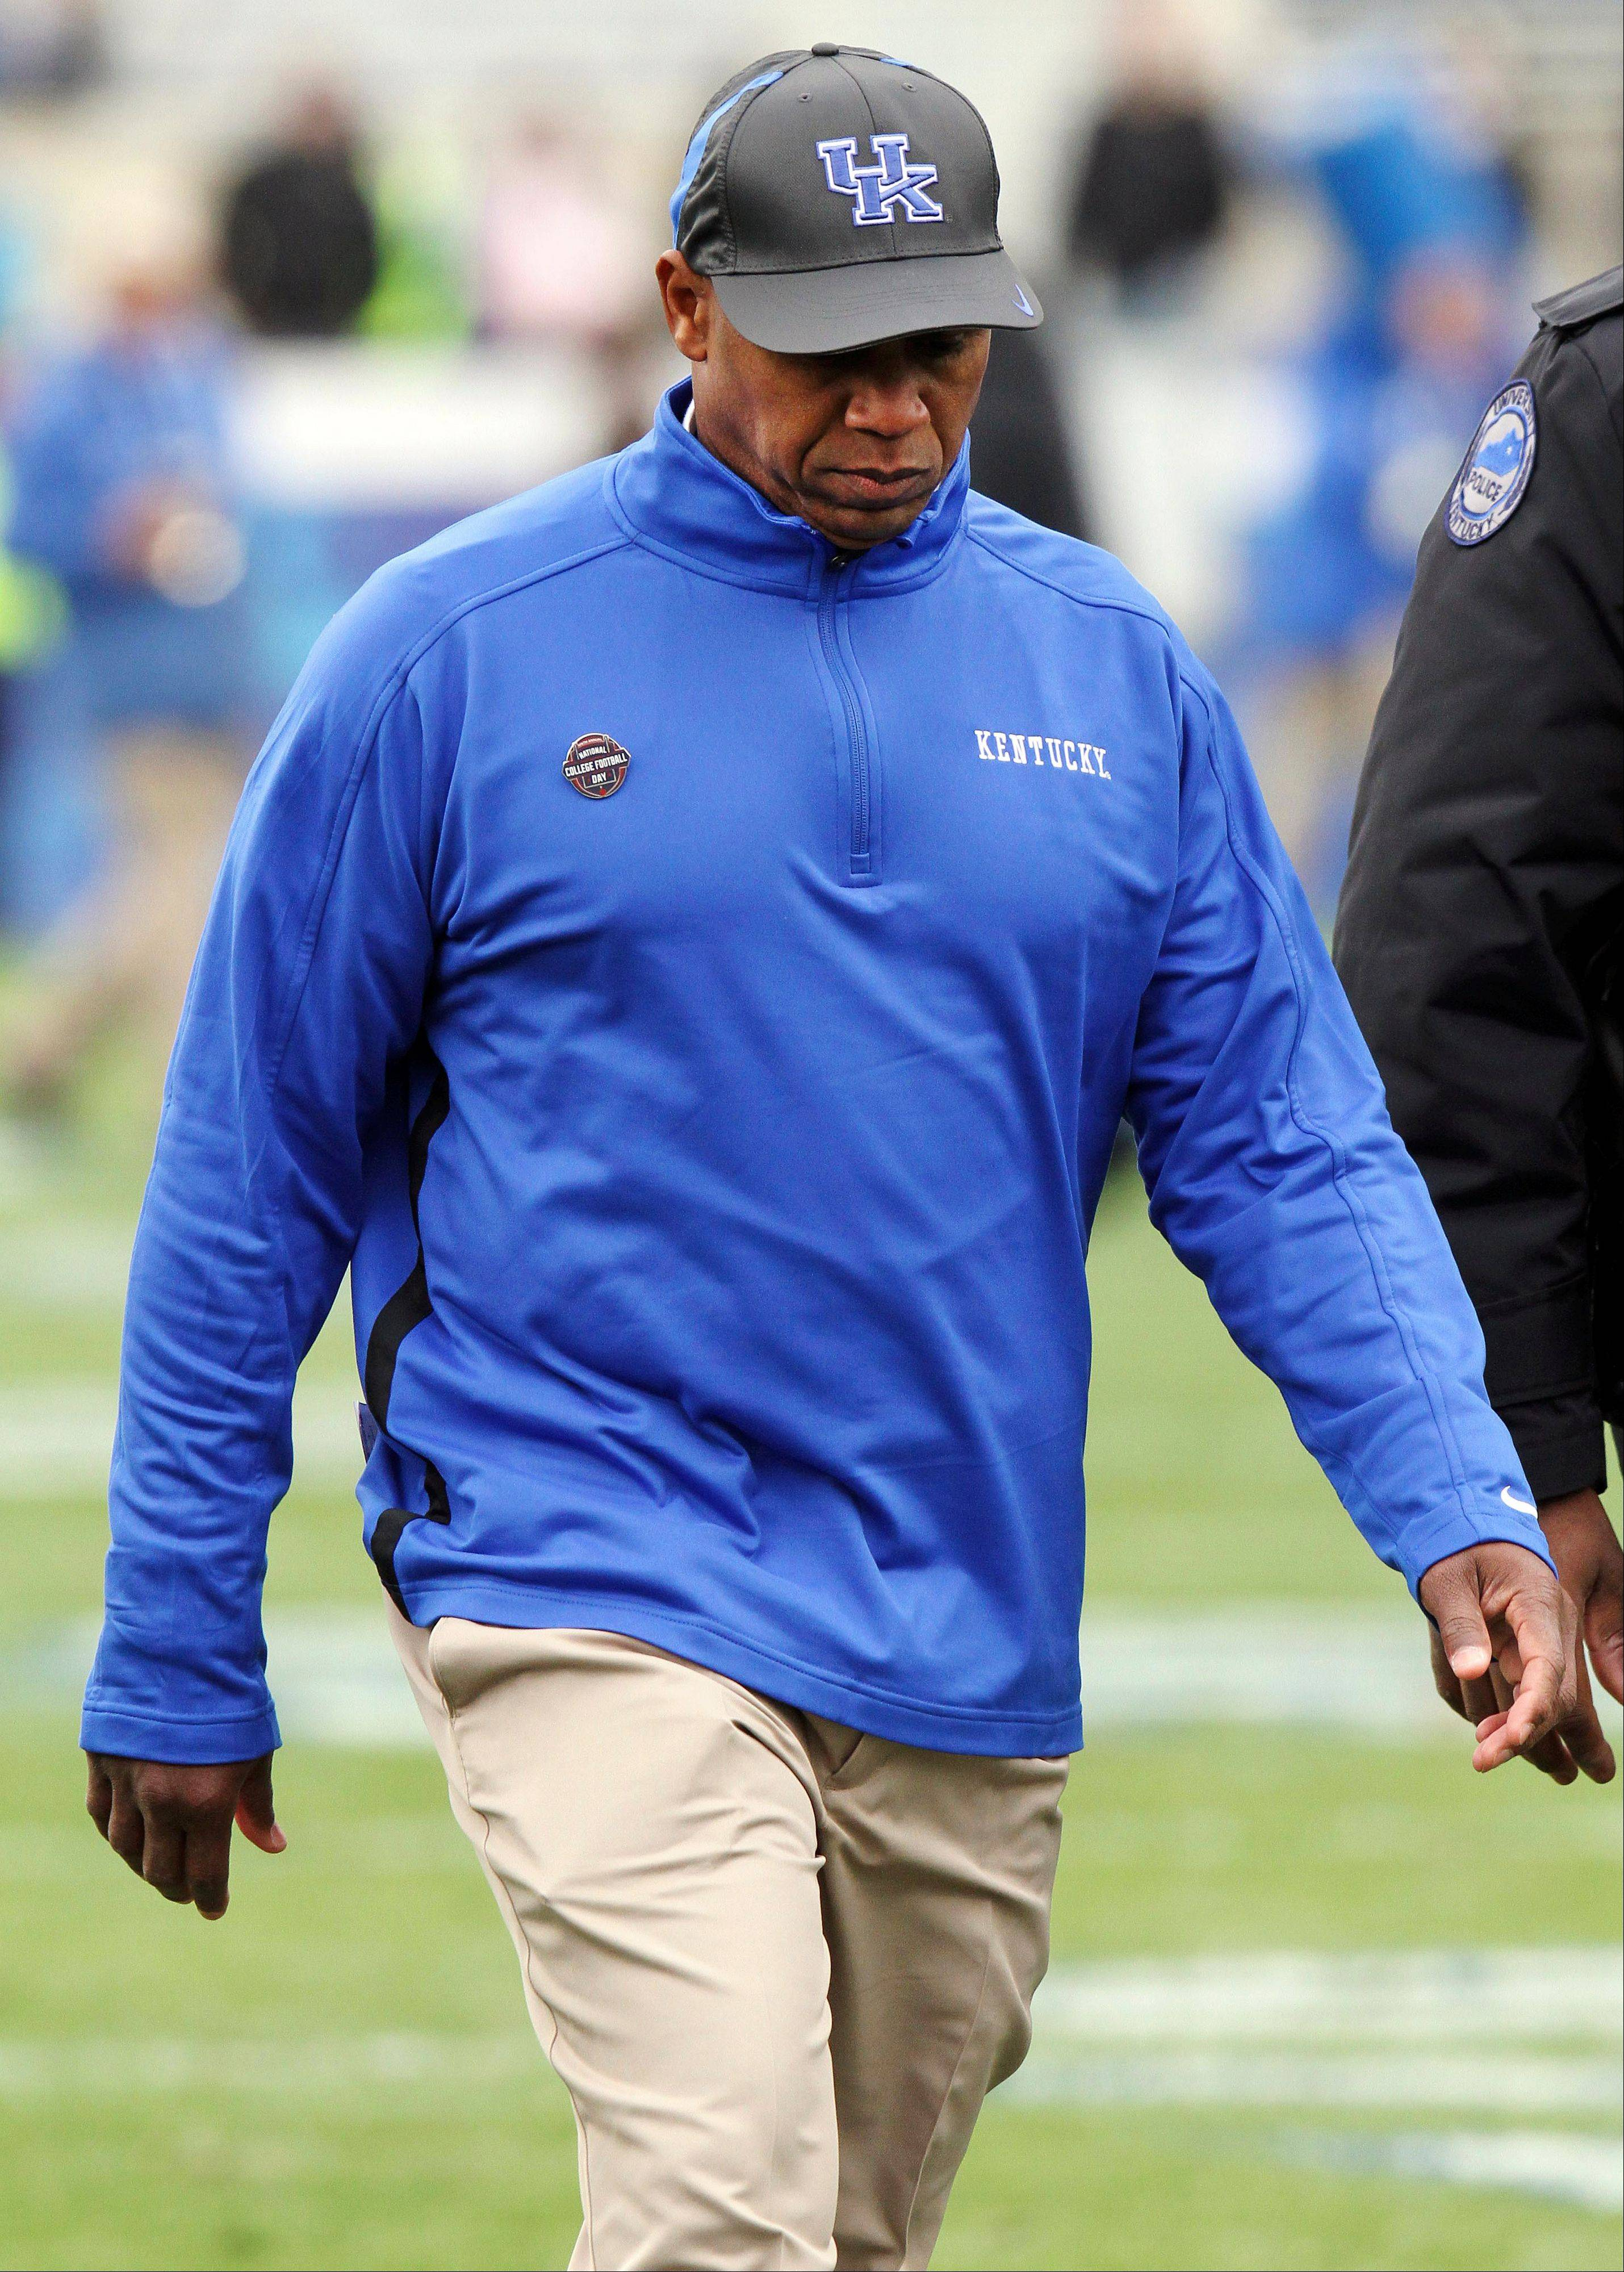 Kentucky head coach Joker Phillips walks off the field after his team�s 40-0 loss to Vanderbilt on Saturday at Commonwealth Stadium in Lexington, Ky. Phillips was fired Sunday.